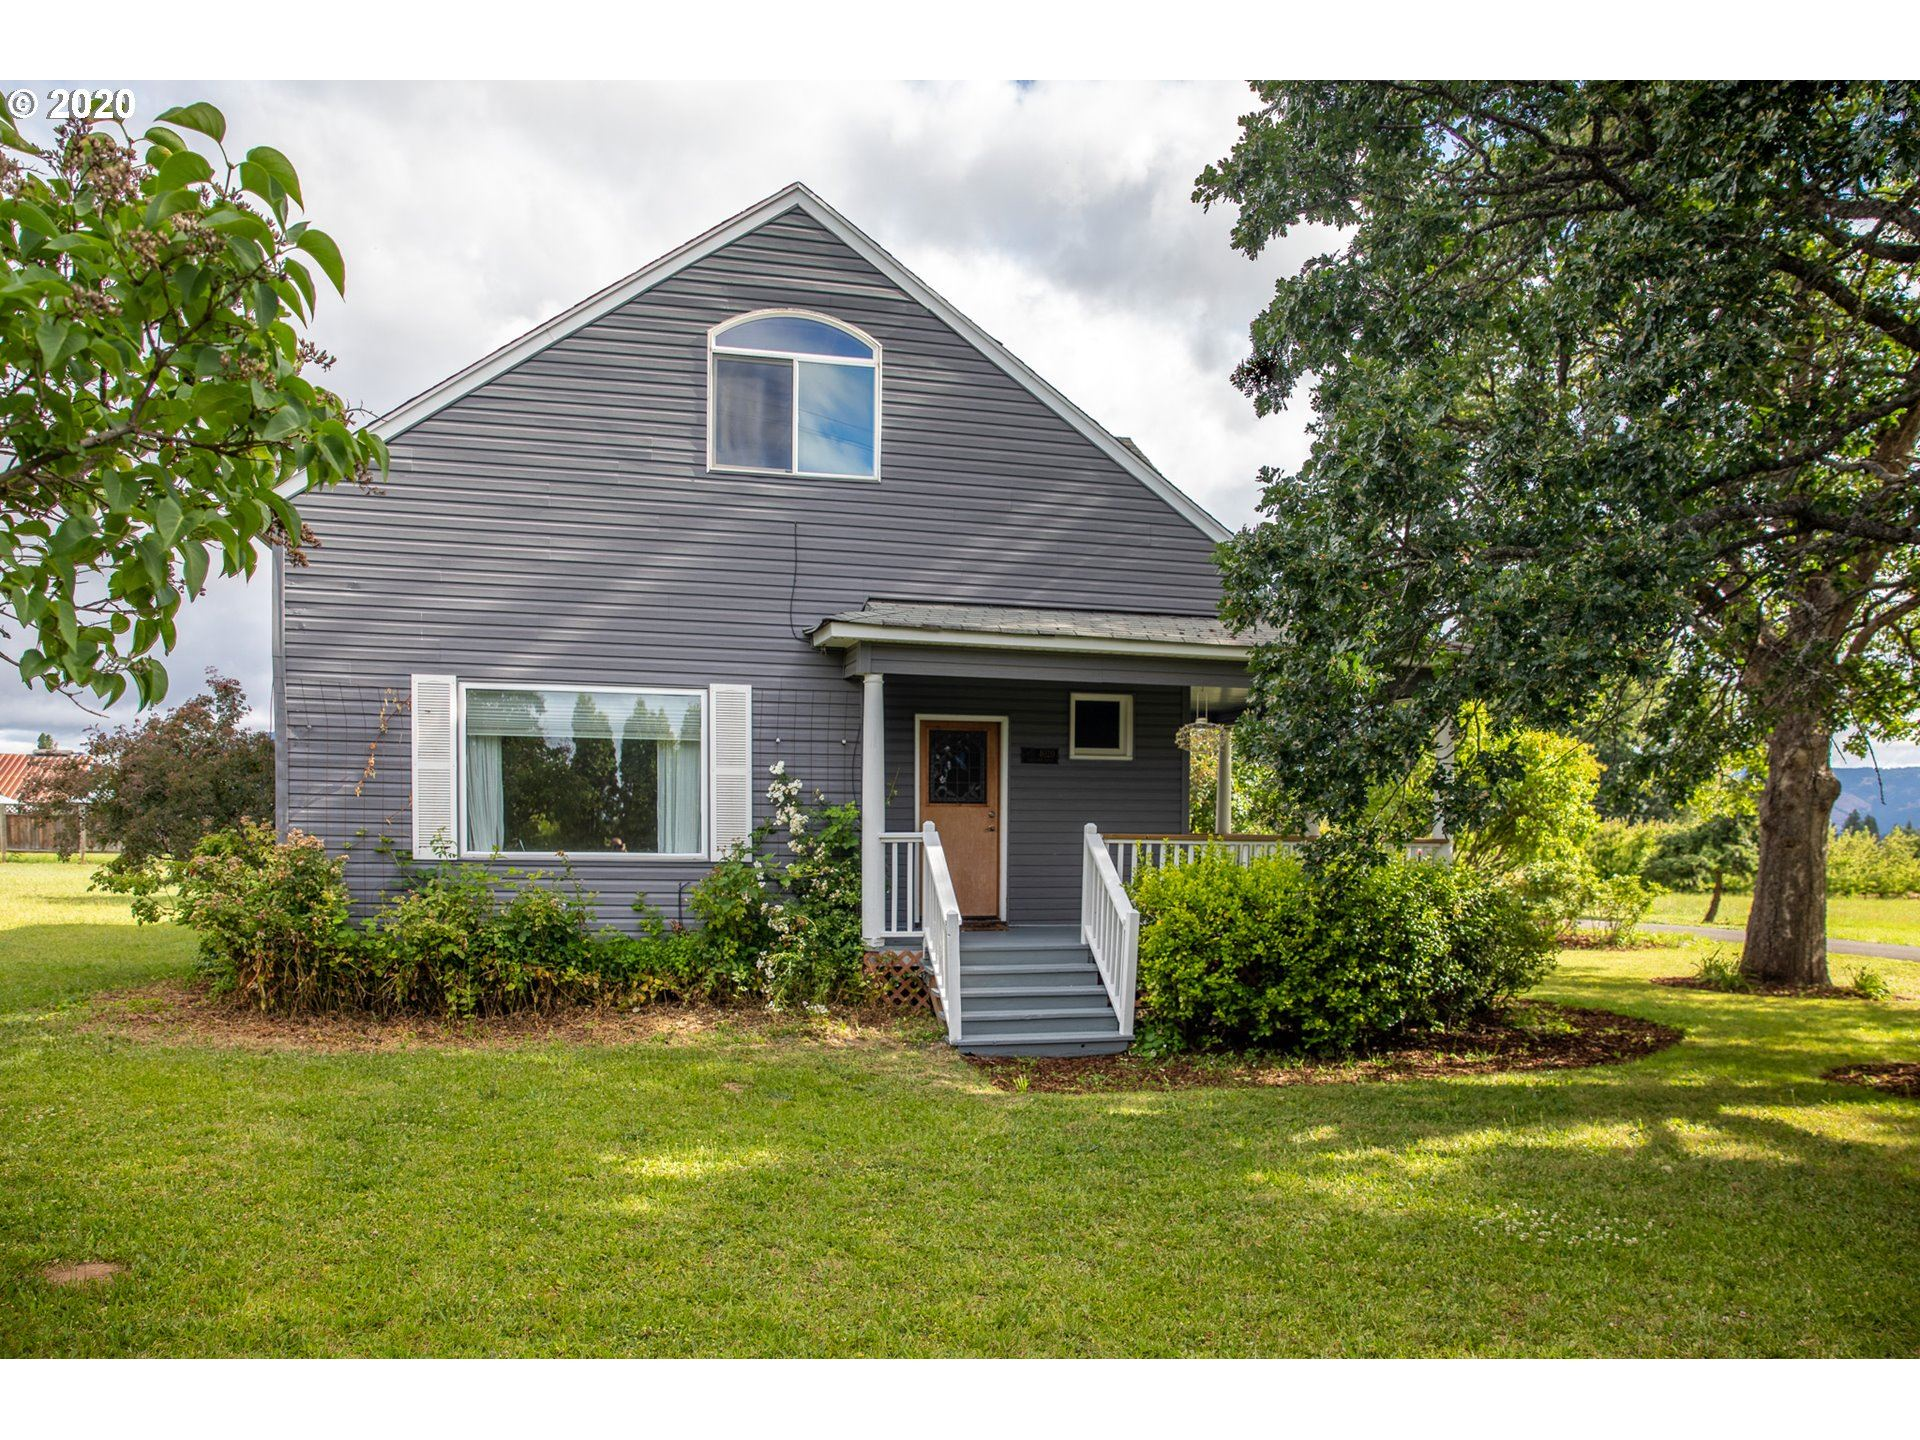 Photo of 4020 PORTLAND DR, Hood River, OR 97031 (MLS # 20282276)